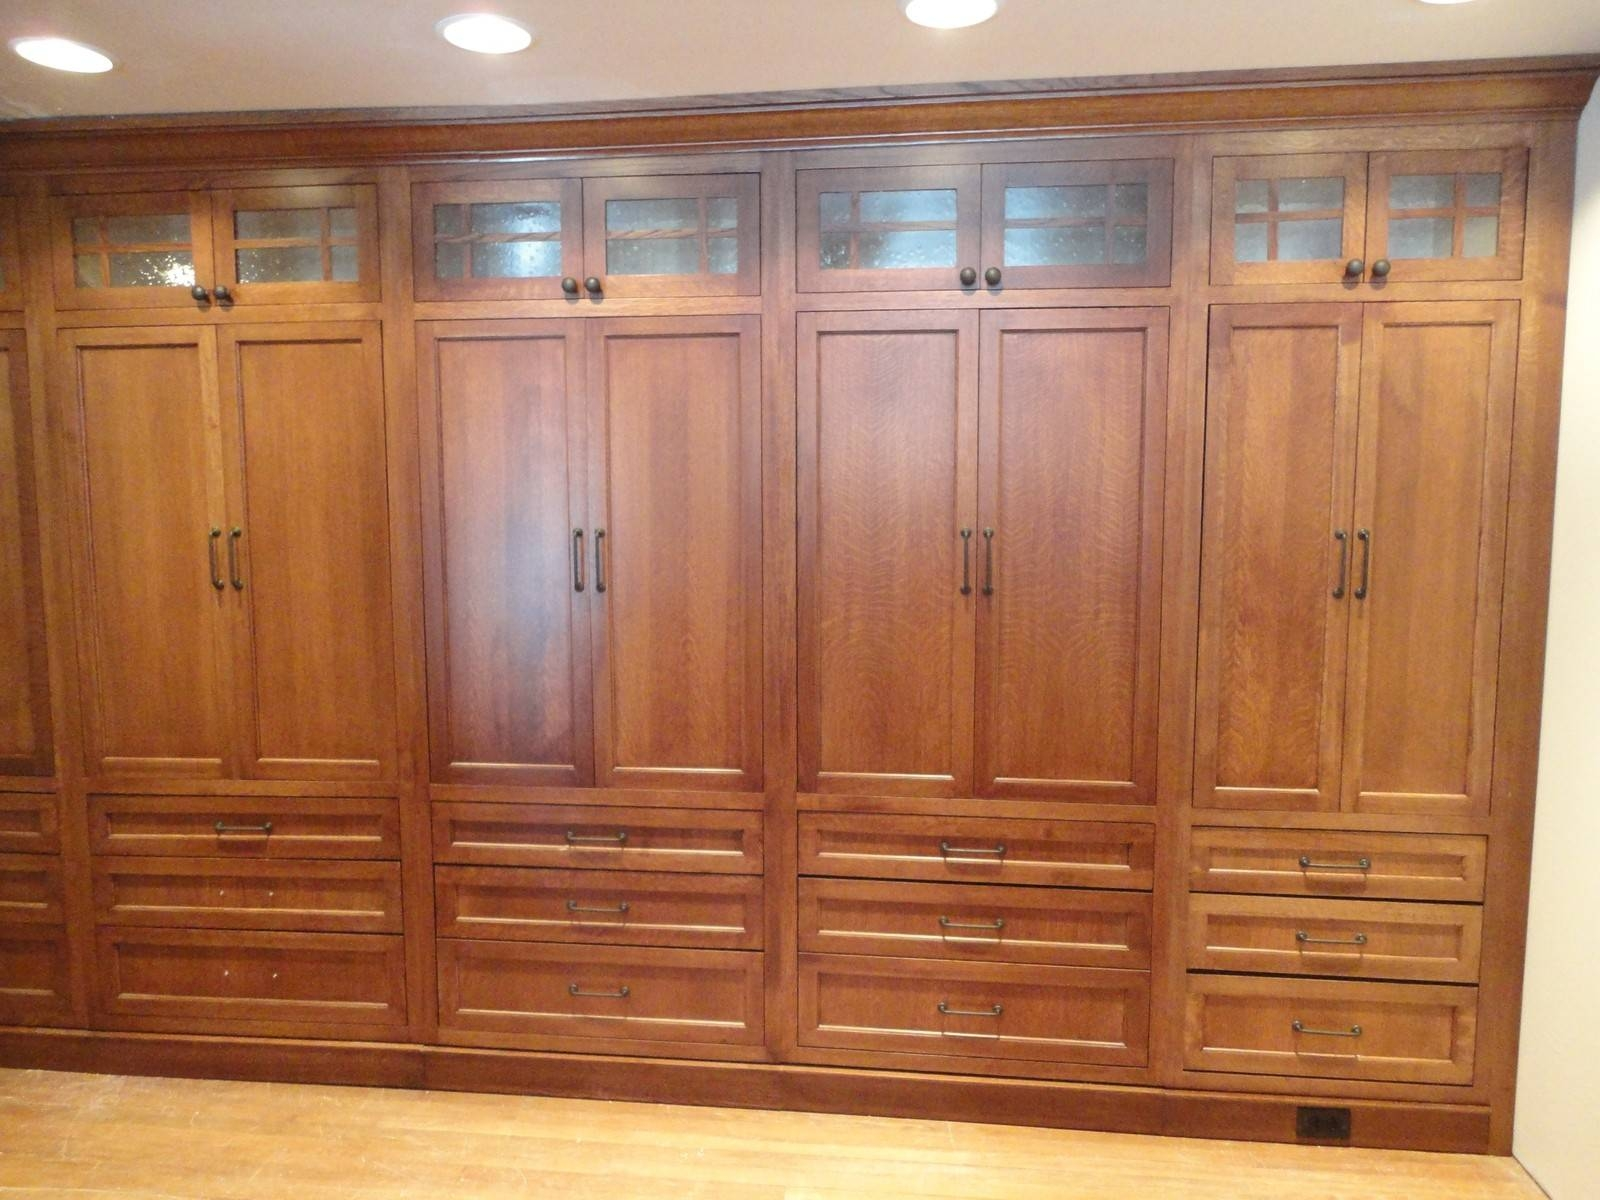 High Cream Wooden Wardrobe With Sliding Door Also Shelves Inside within Wardrobes With Drawers and Shelves (Image 15 of 30)